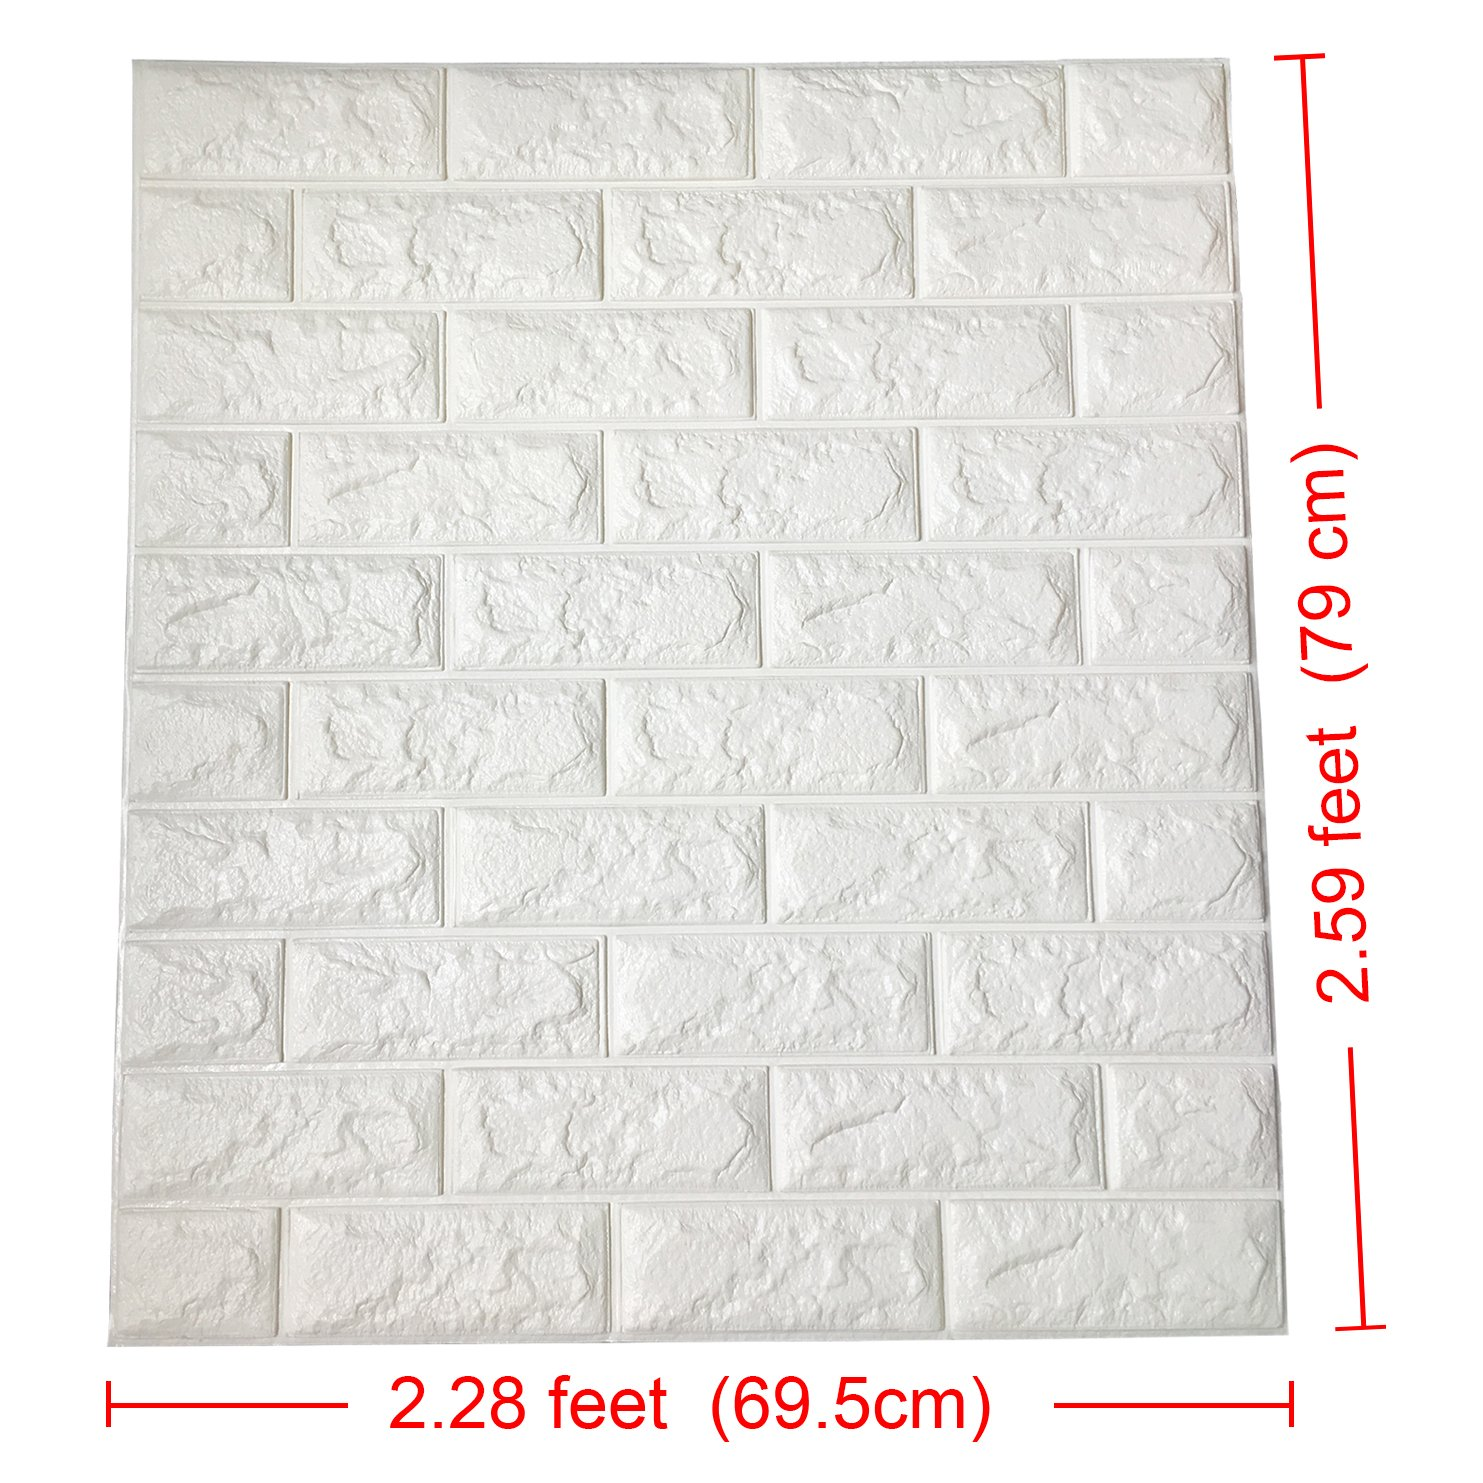 Art3d 29 Sq.Ft Peel and Stick 3D Wall Panels for Interior Wall Decor Pack of 5 White Brick Wallpaper